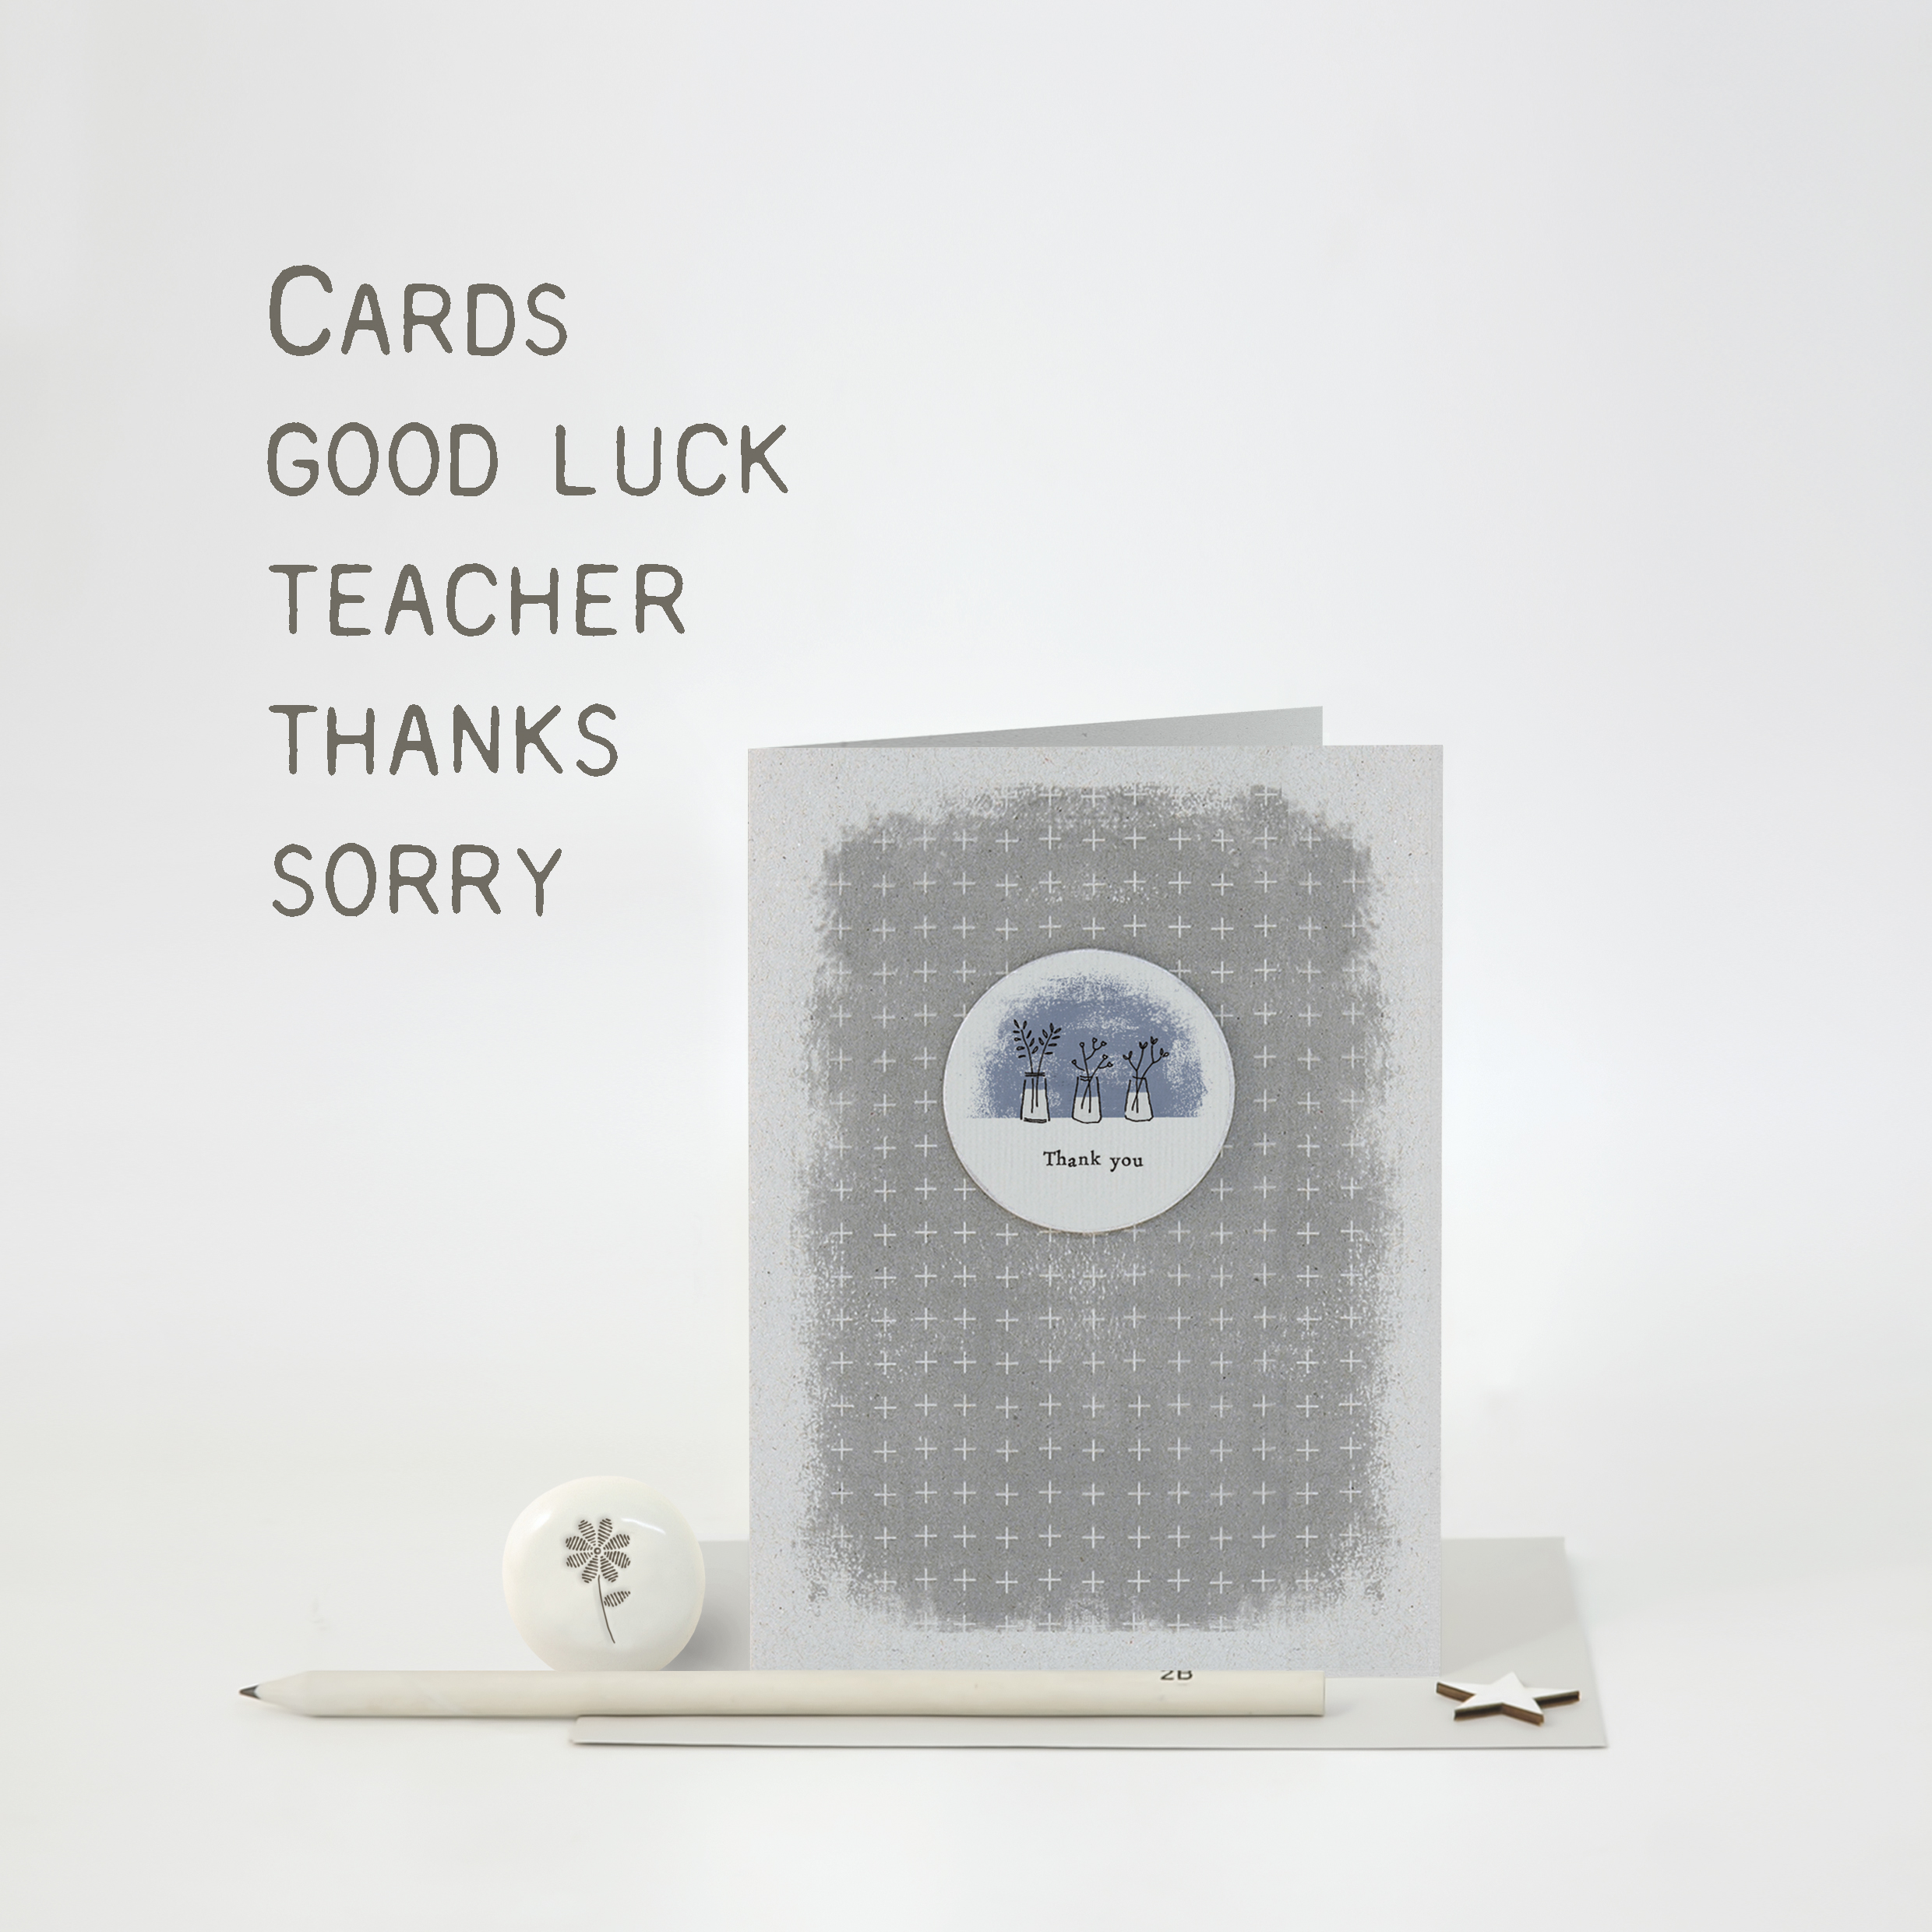 Teacher, Thanks, Sorry & Good luck